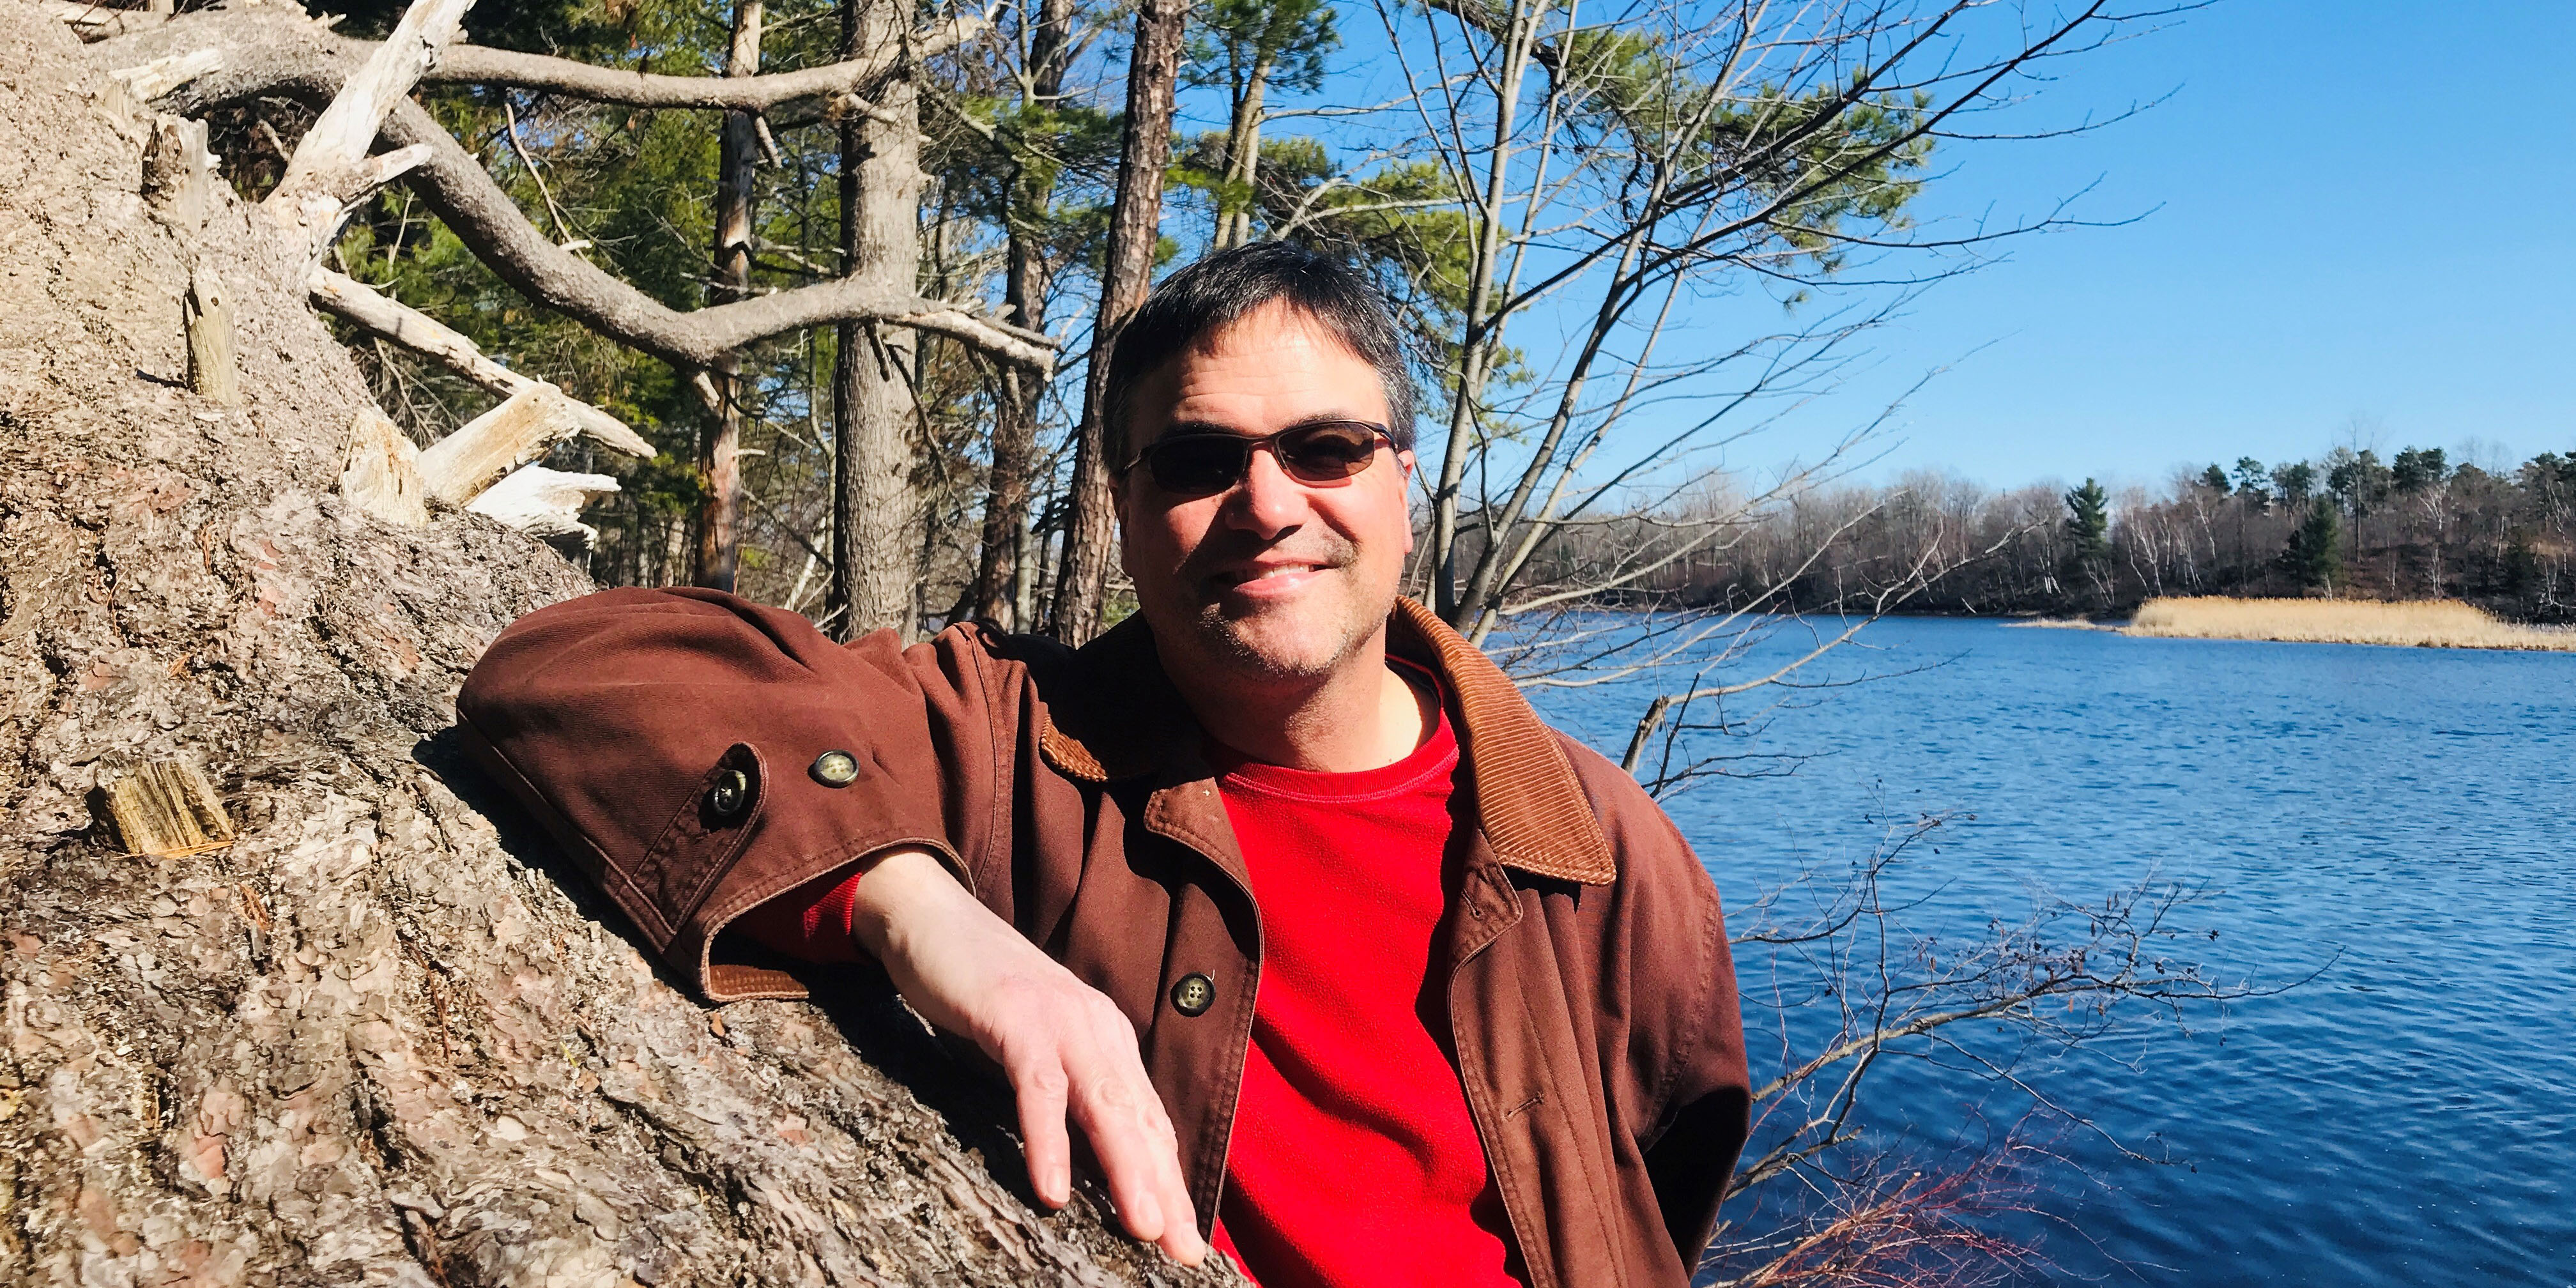 image description: smiling man in red shirt and brown jacket standing near blue water on a sunny day